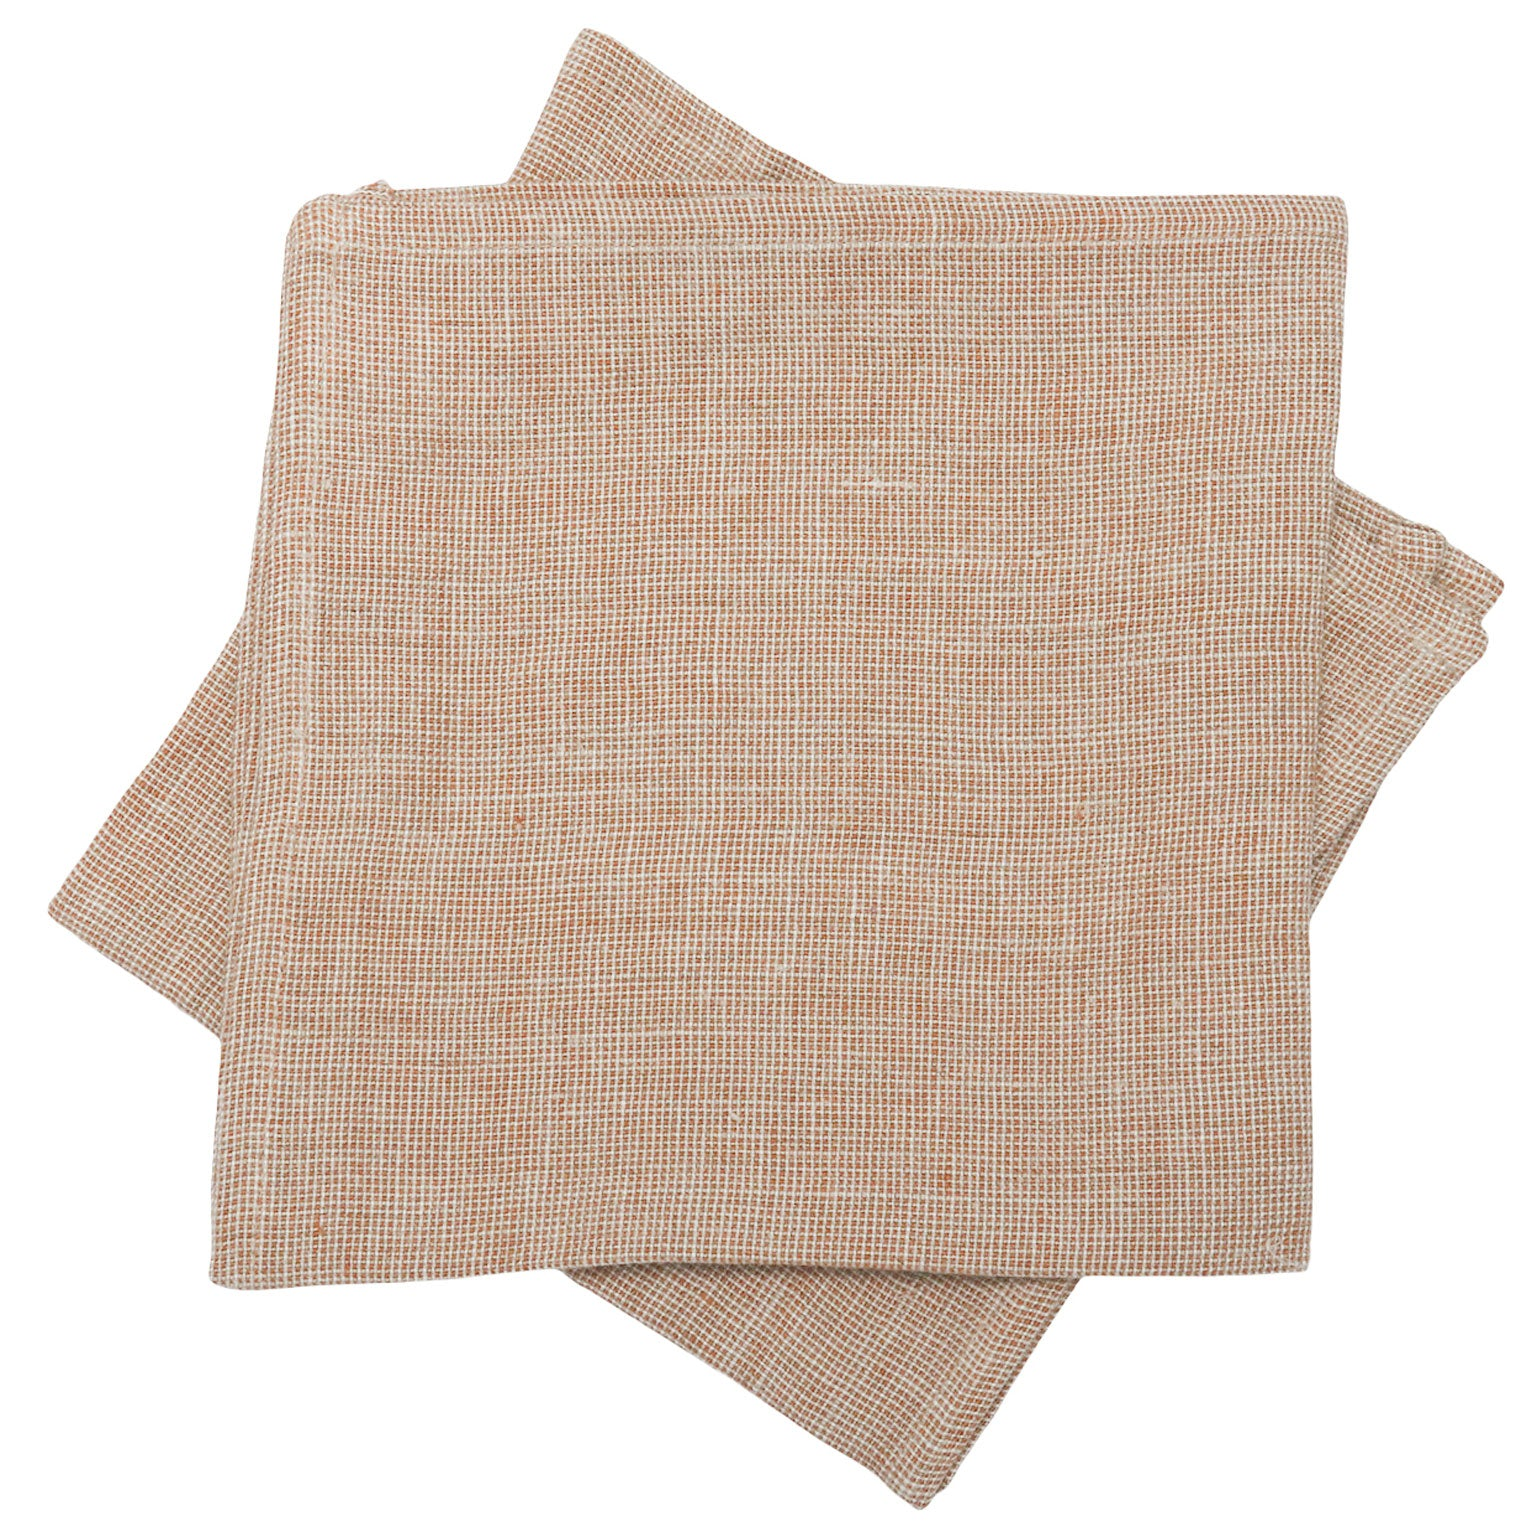 Linen Napkin - Light Oak